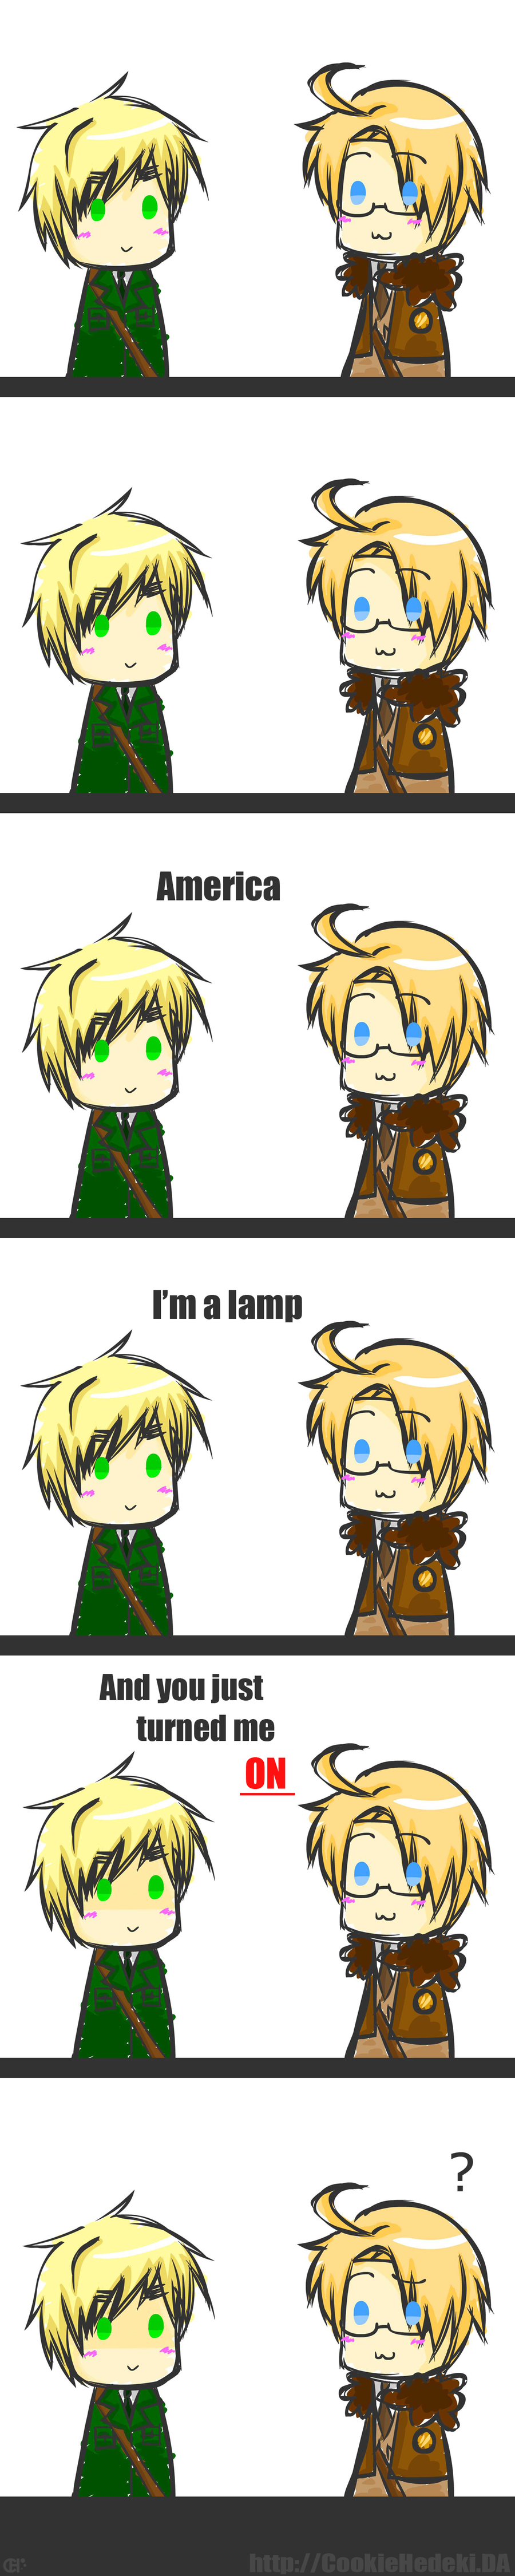 I'm a lamp C: by CookieHedeki